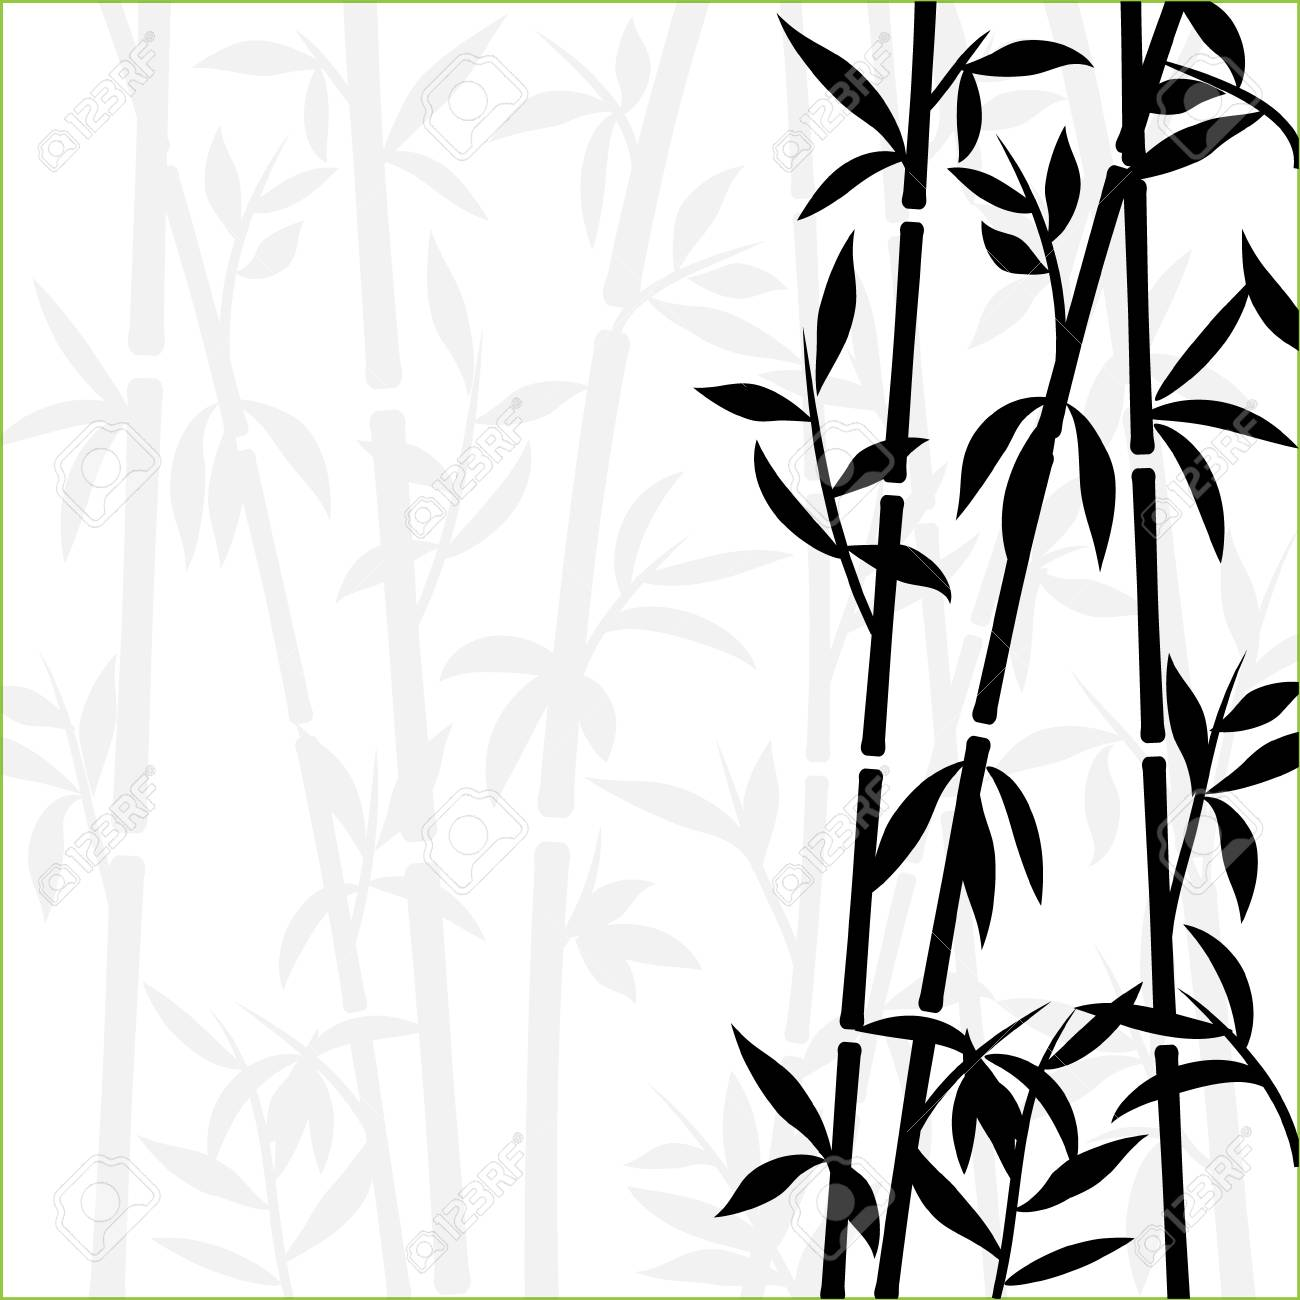 110288968 bamboo background japanese asian plant wallpaper grass bamboo tree vector pattern black and white